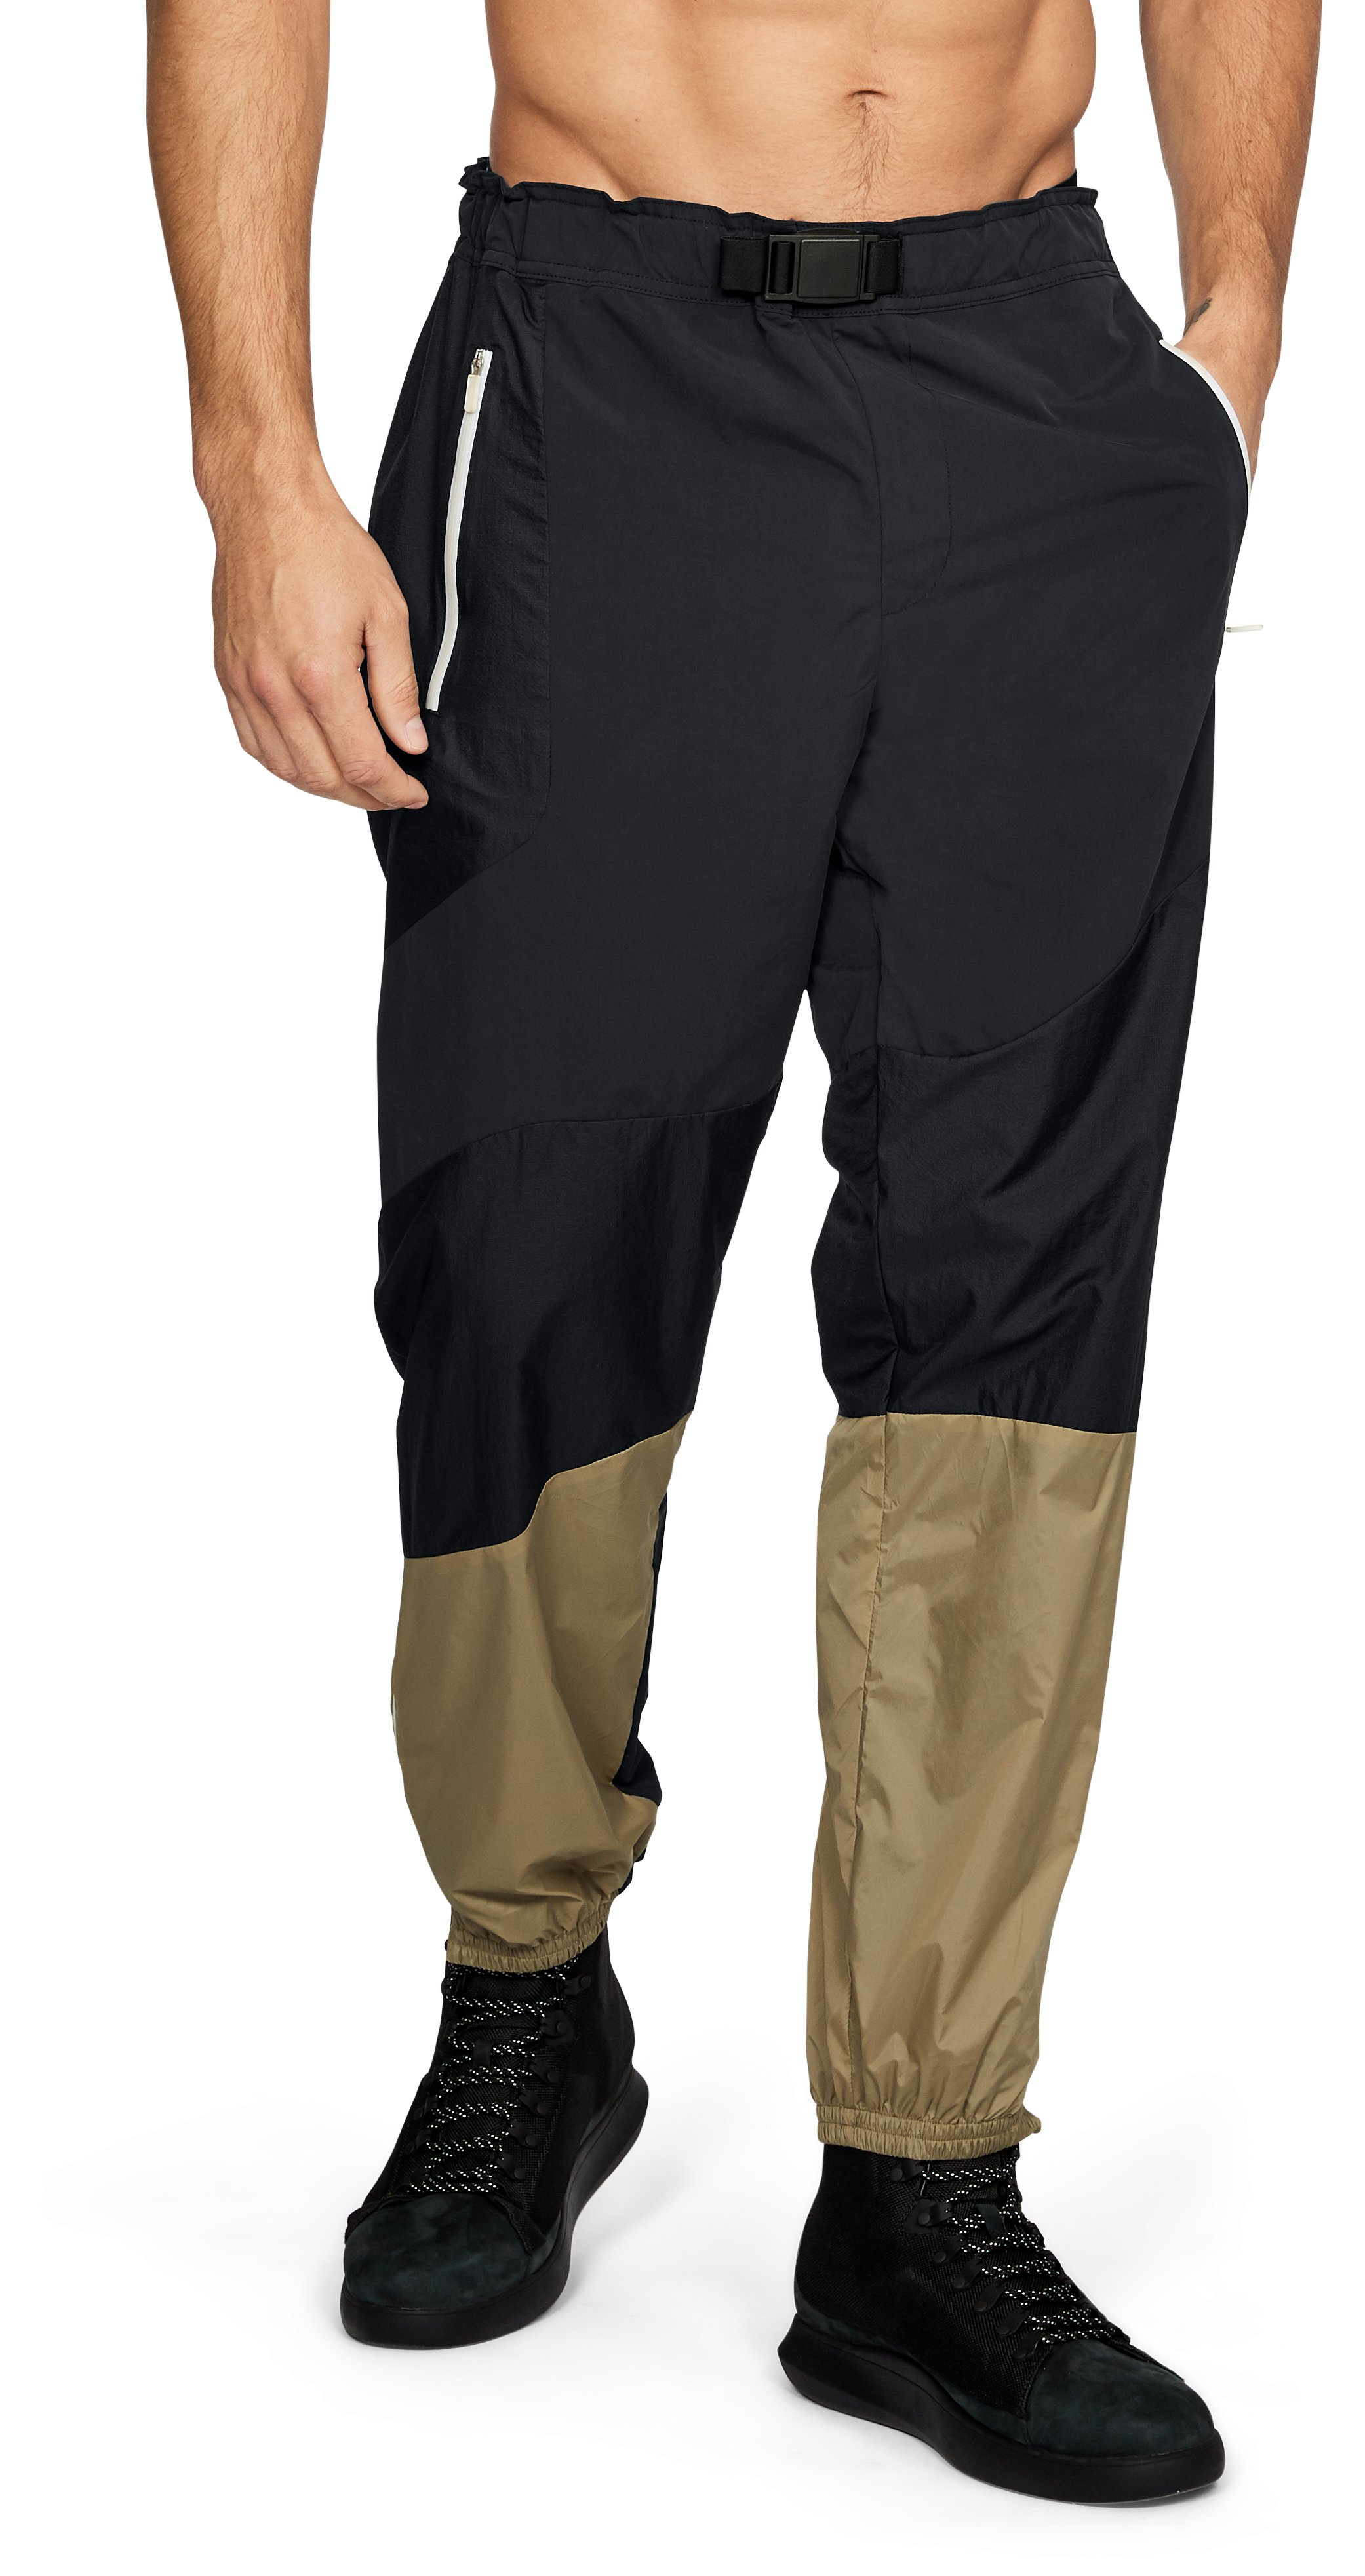 Men's UAS Meters Track Pants, Black